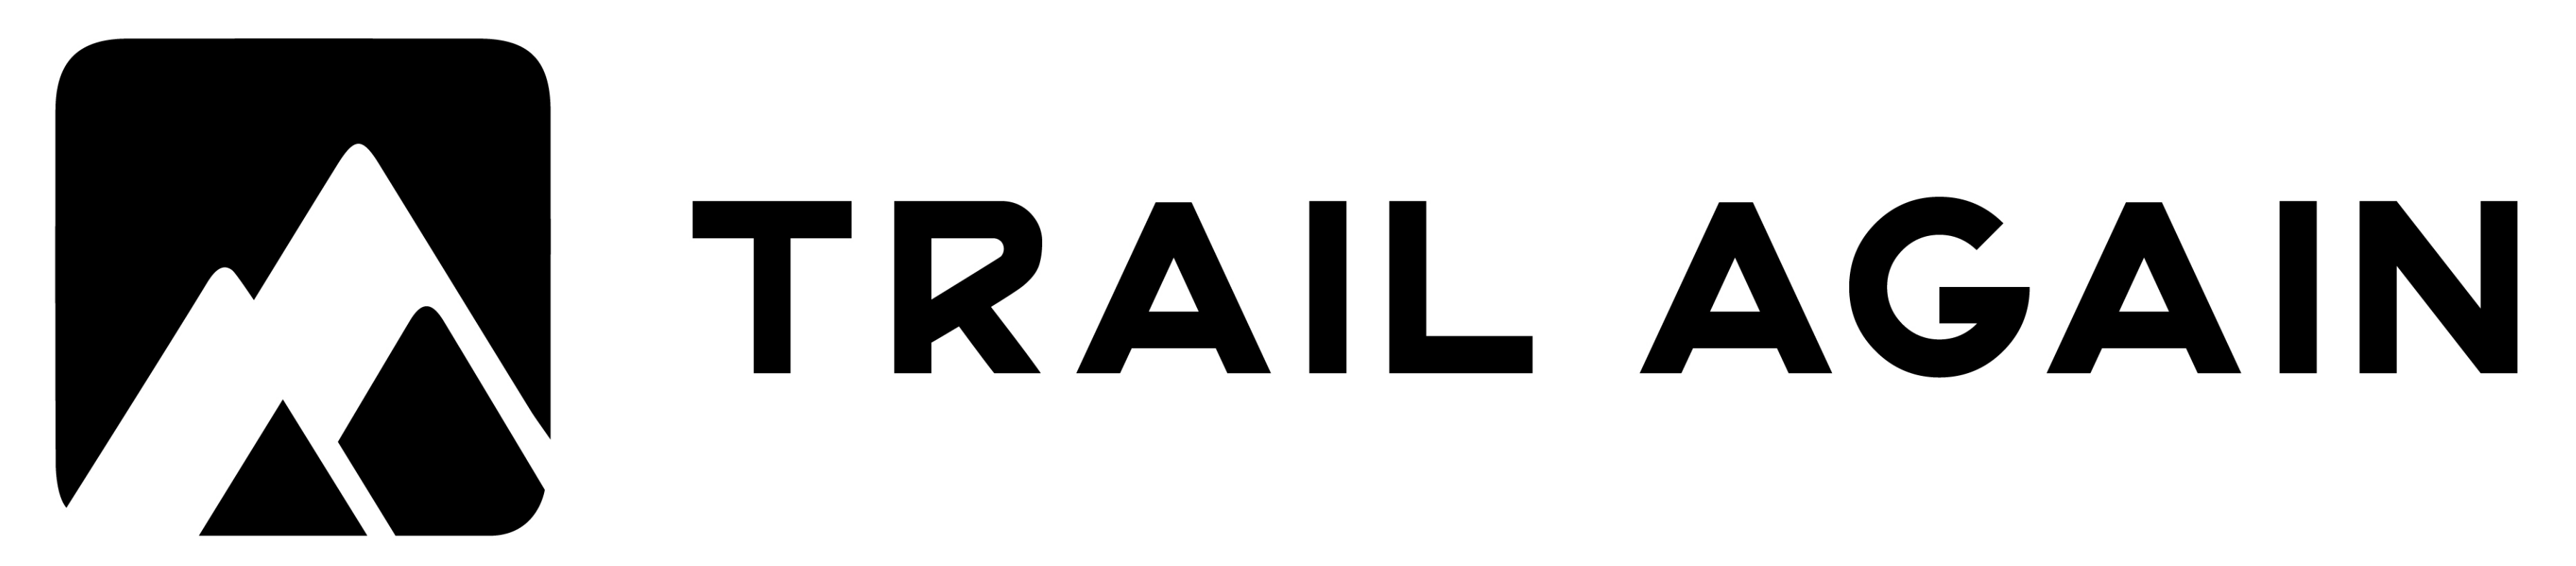 Trail-Again new logo